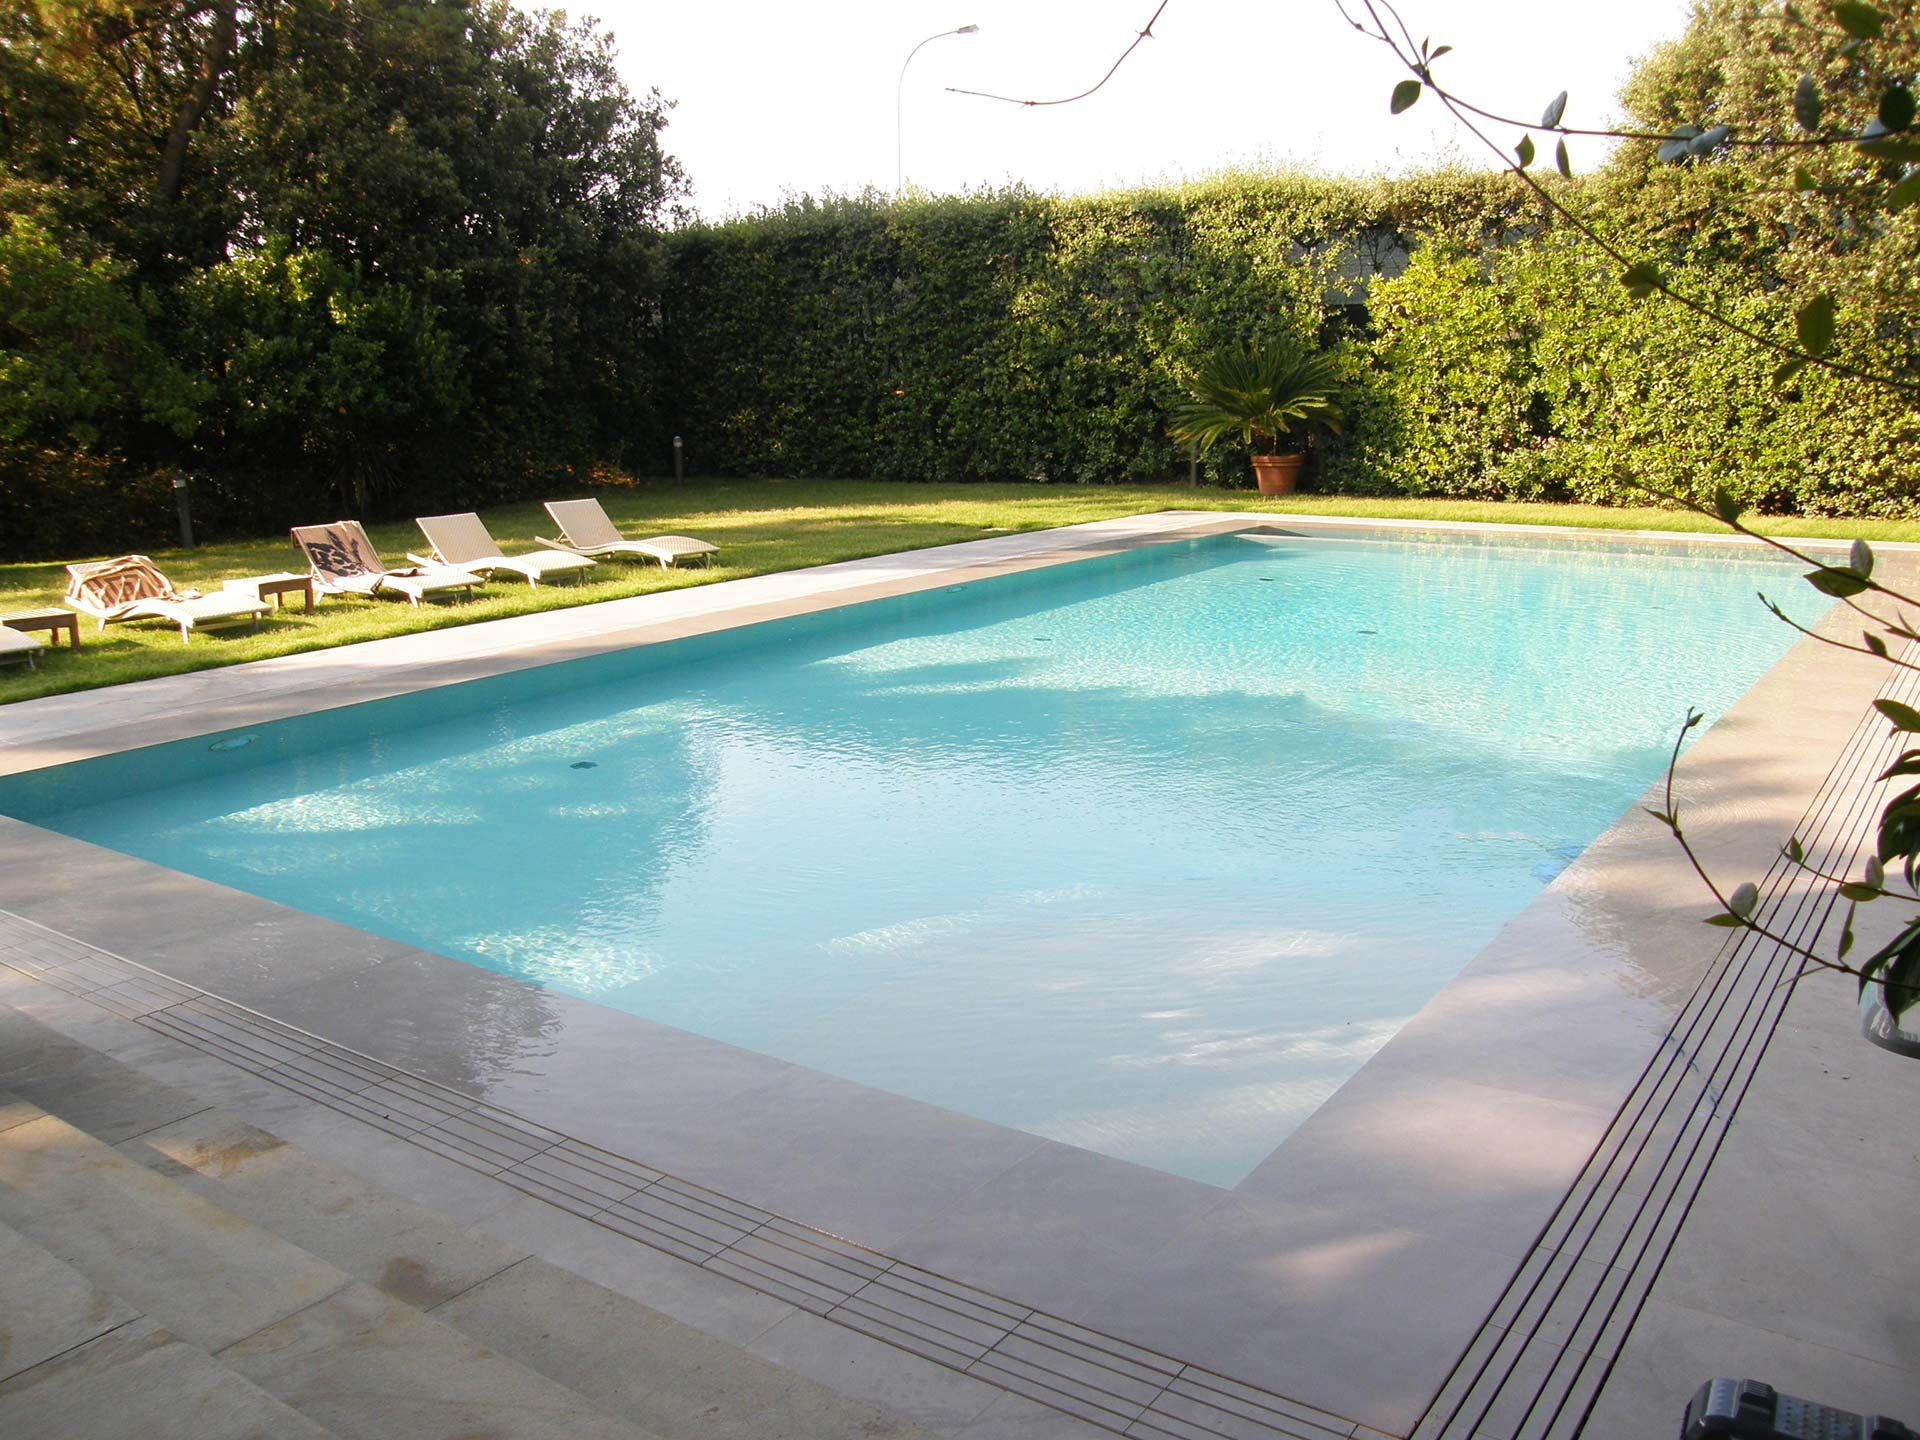 "Private pool Forte dei Marmi (Italy) - Casamood ""Materia"" Project in its grey shade in- and outside this private pool #pool #outdoor #private #cool #summer #ceramics #tiles #casamood #life #water"